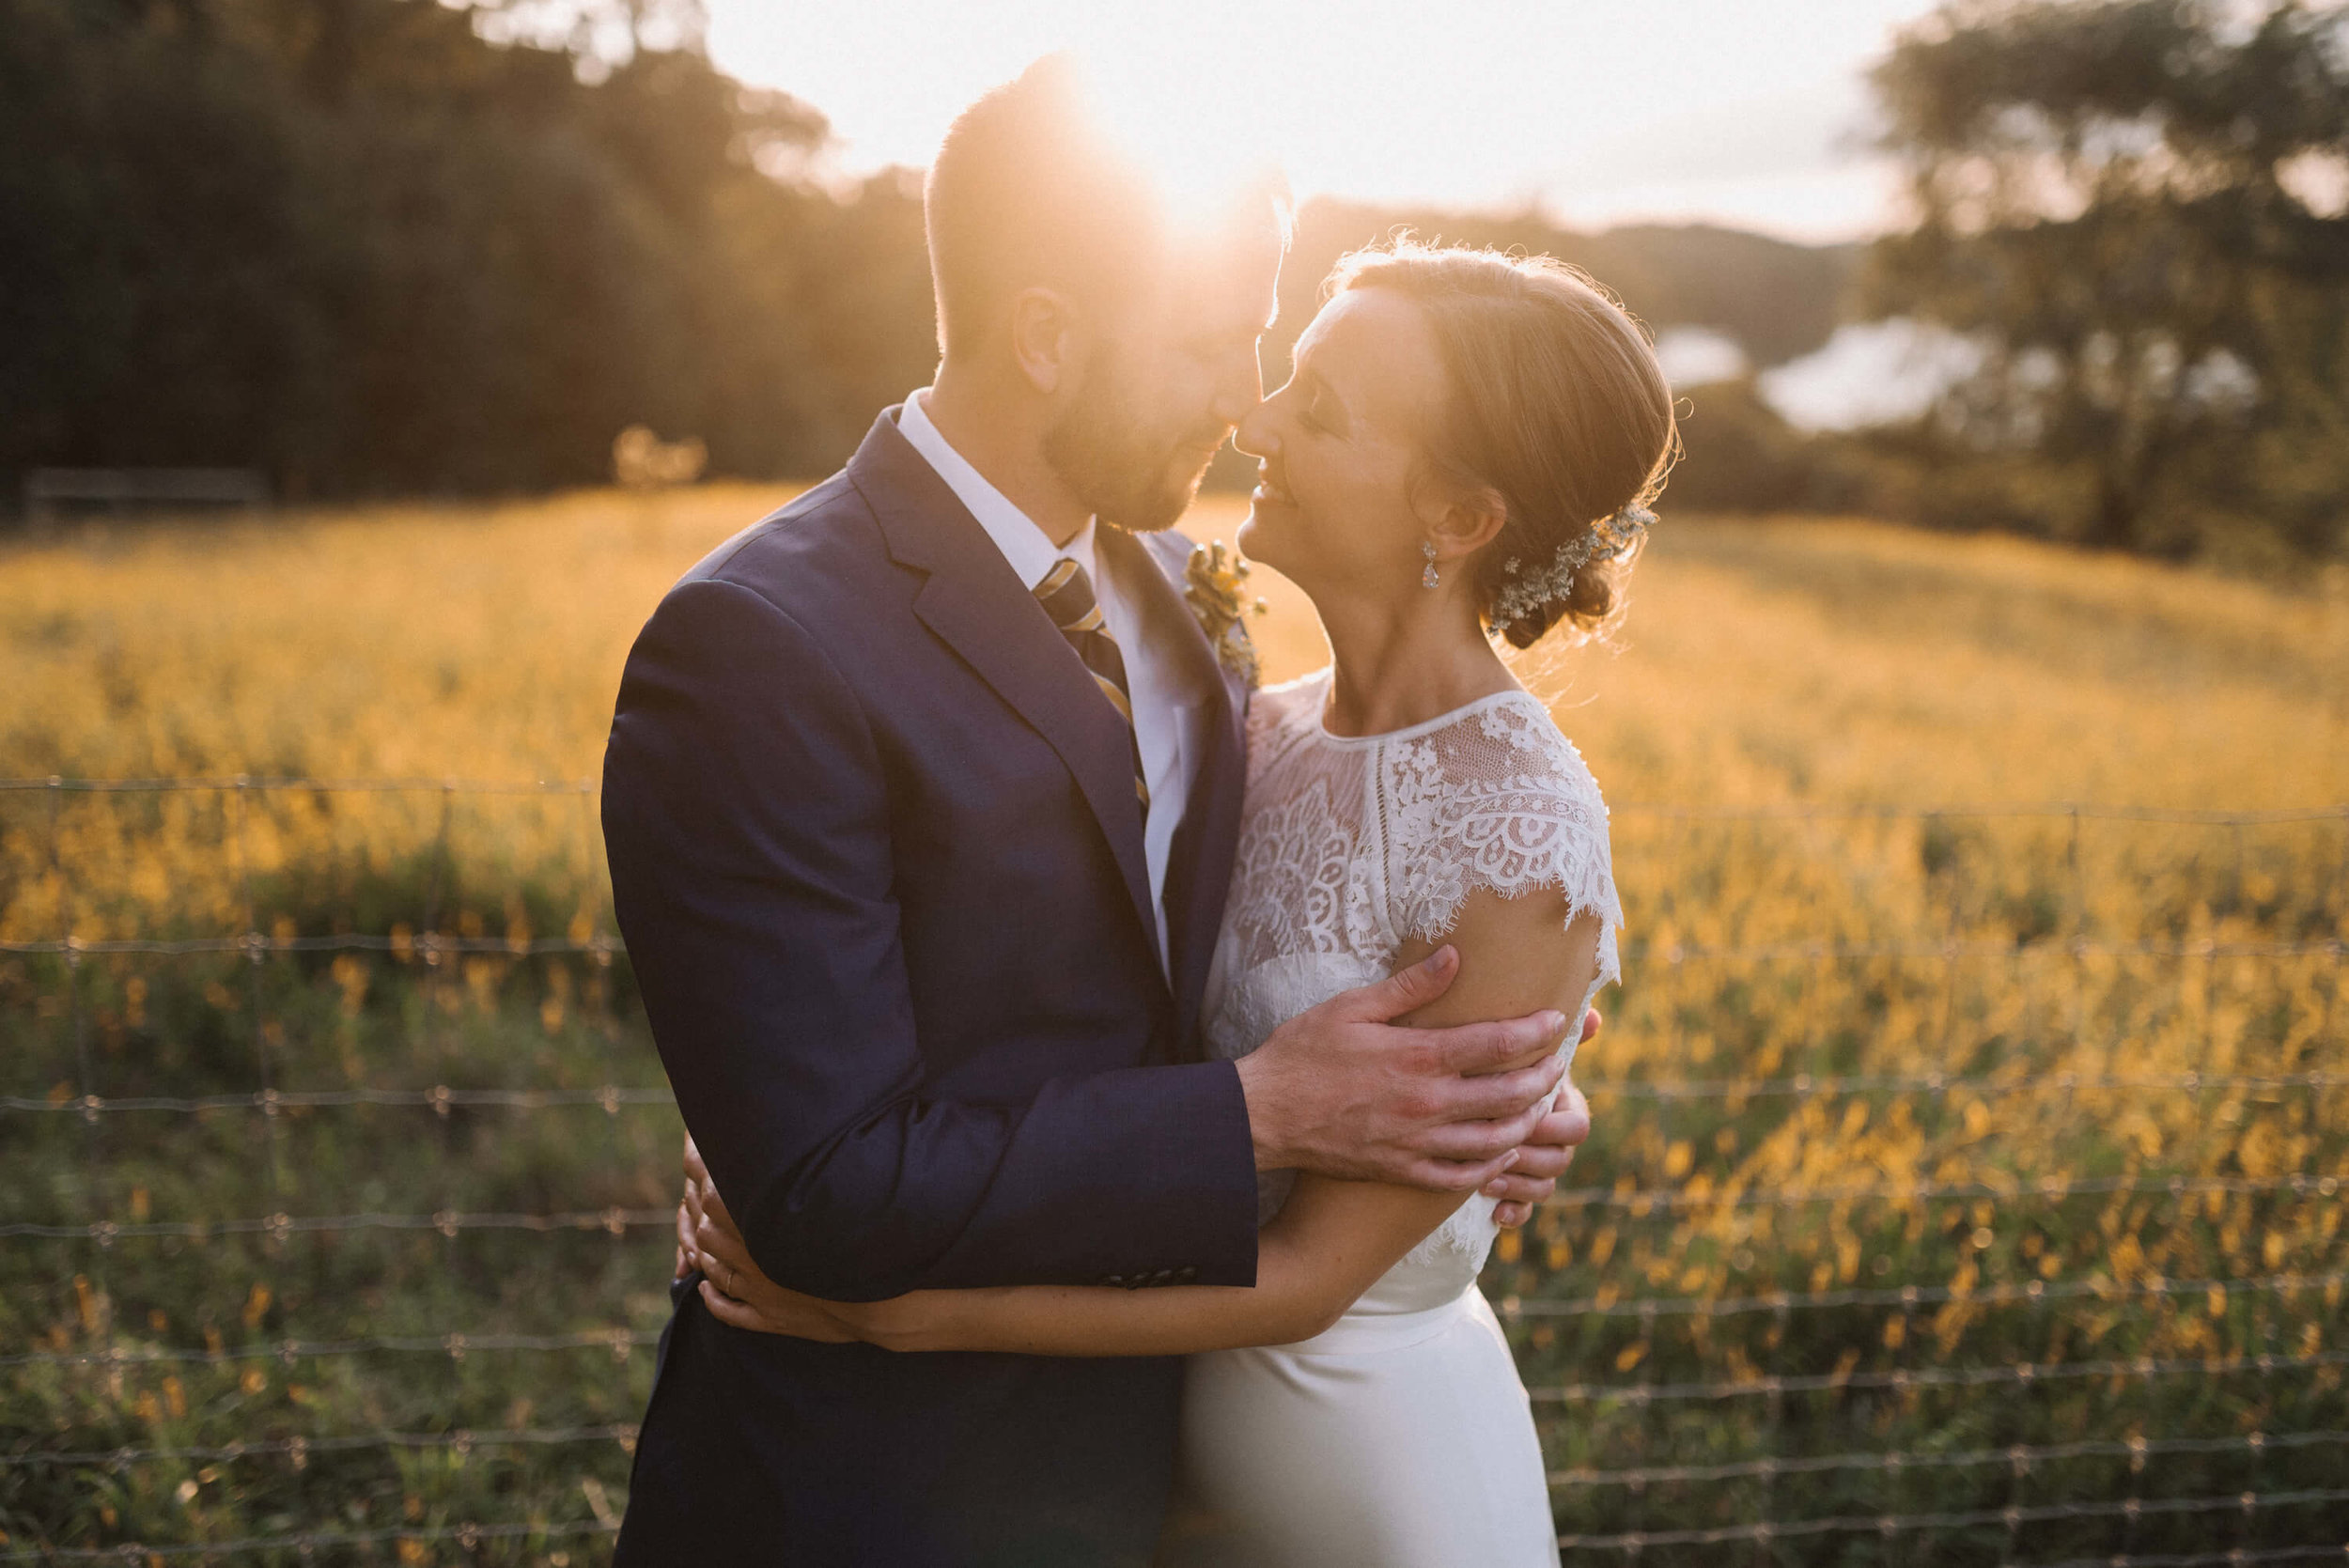 81Jonny and Liz Minnesota Wedding Photographers | Sixpence day of coordinating at Gale Woods farm venue near the lake.JPG